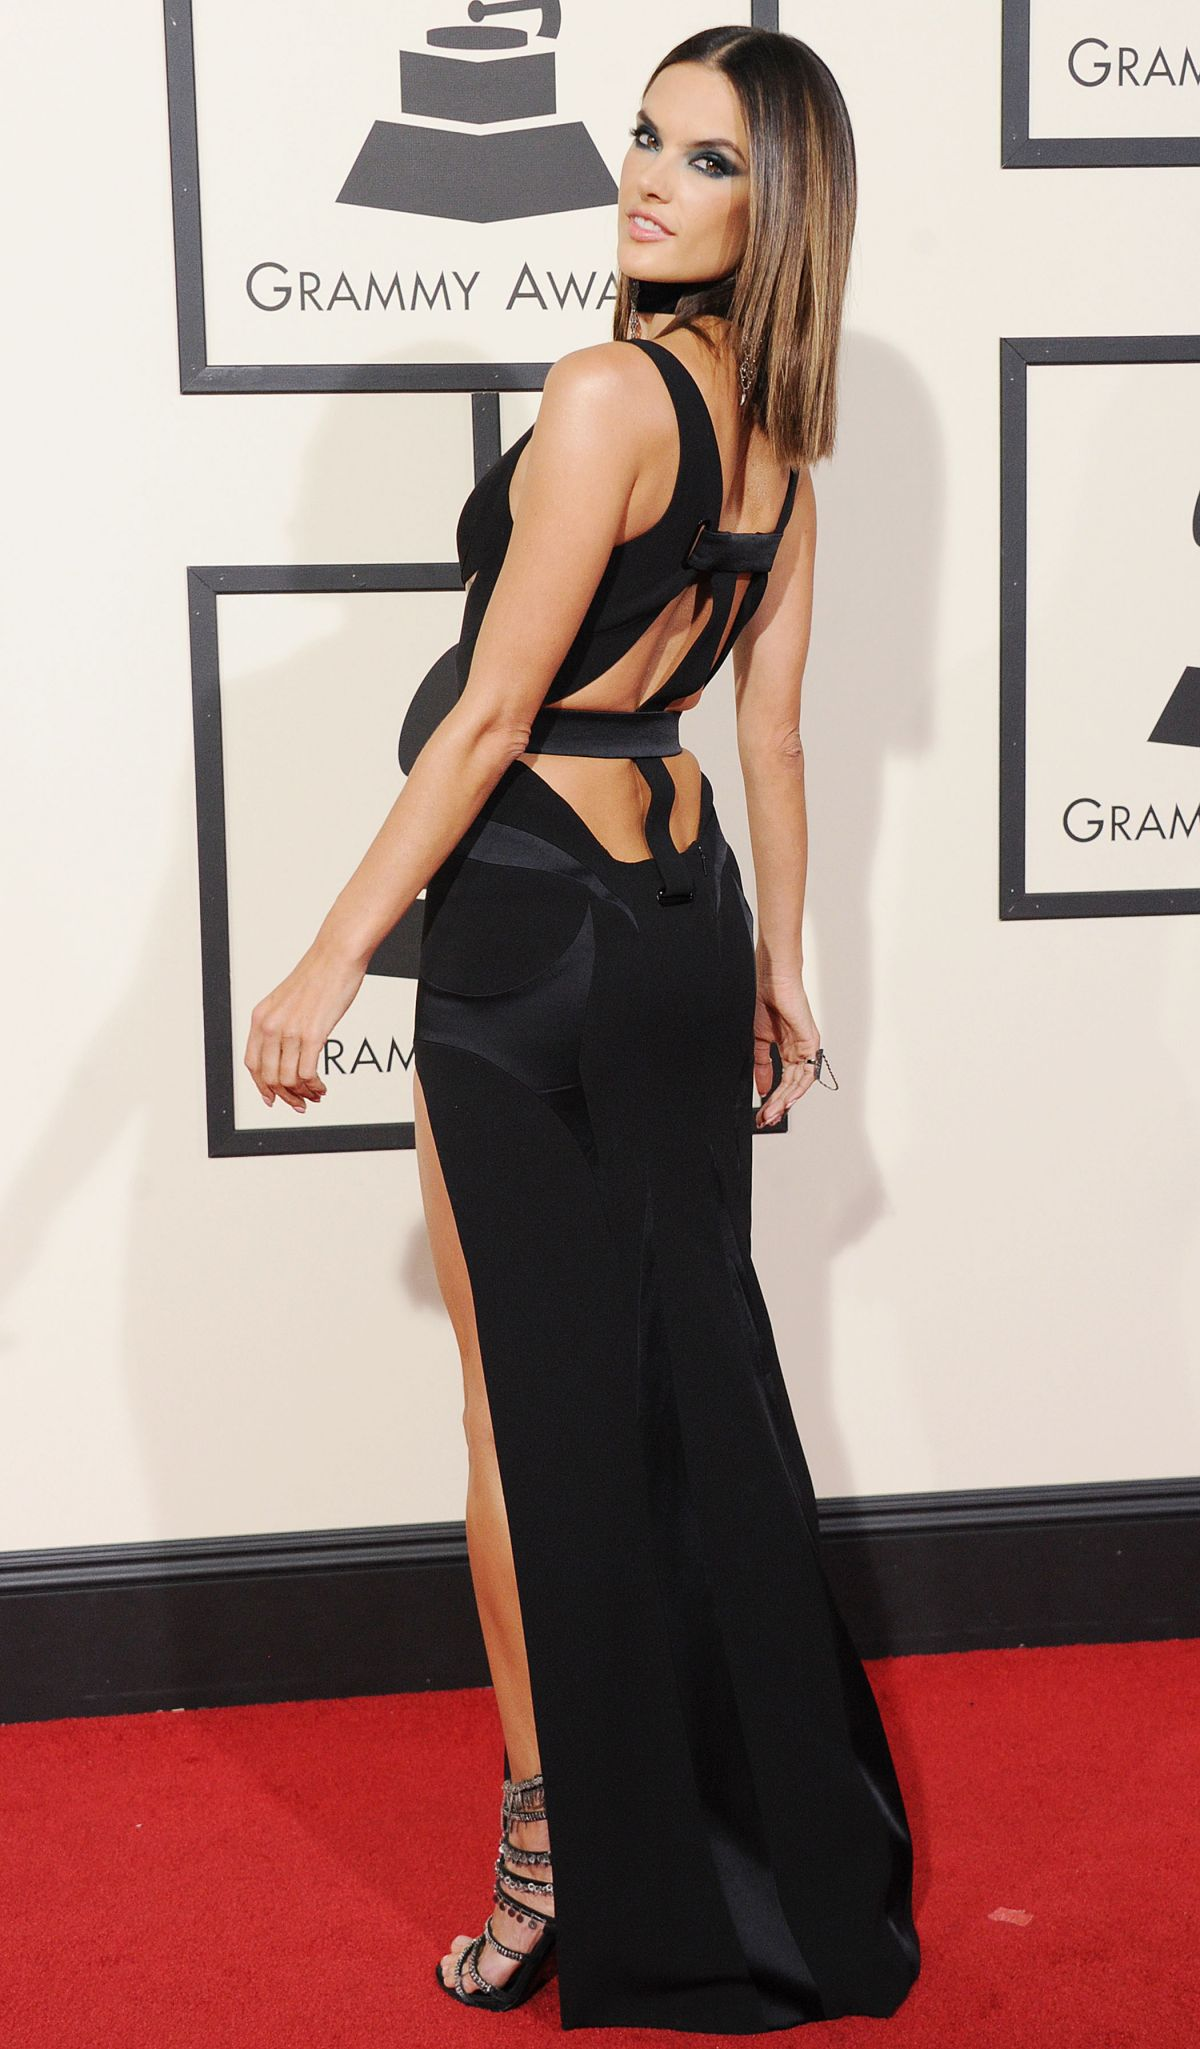 ALESSANDRA AMBROSIO at Grammy Awards 2016 in Los Angeles 02/15/2016 ...